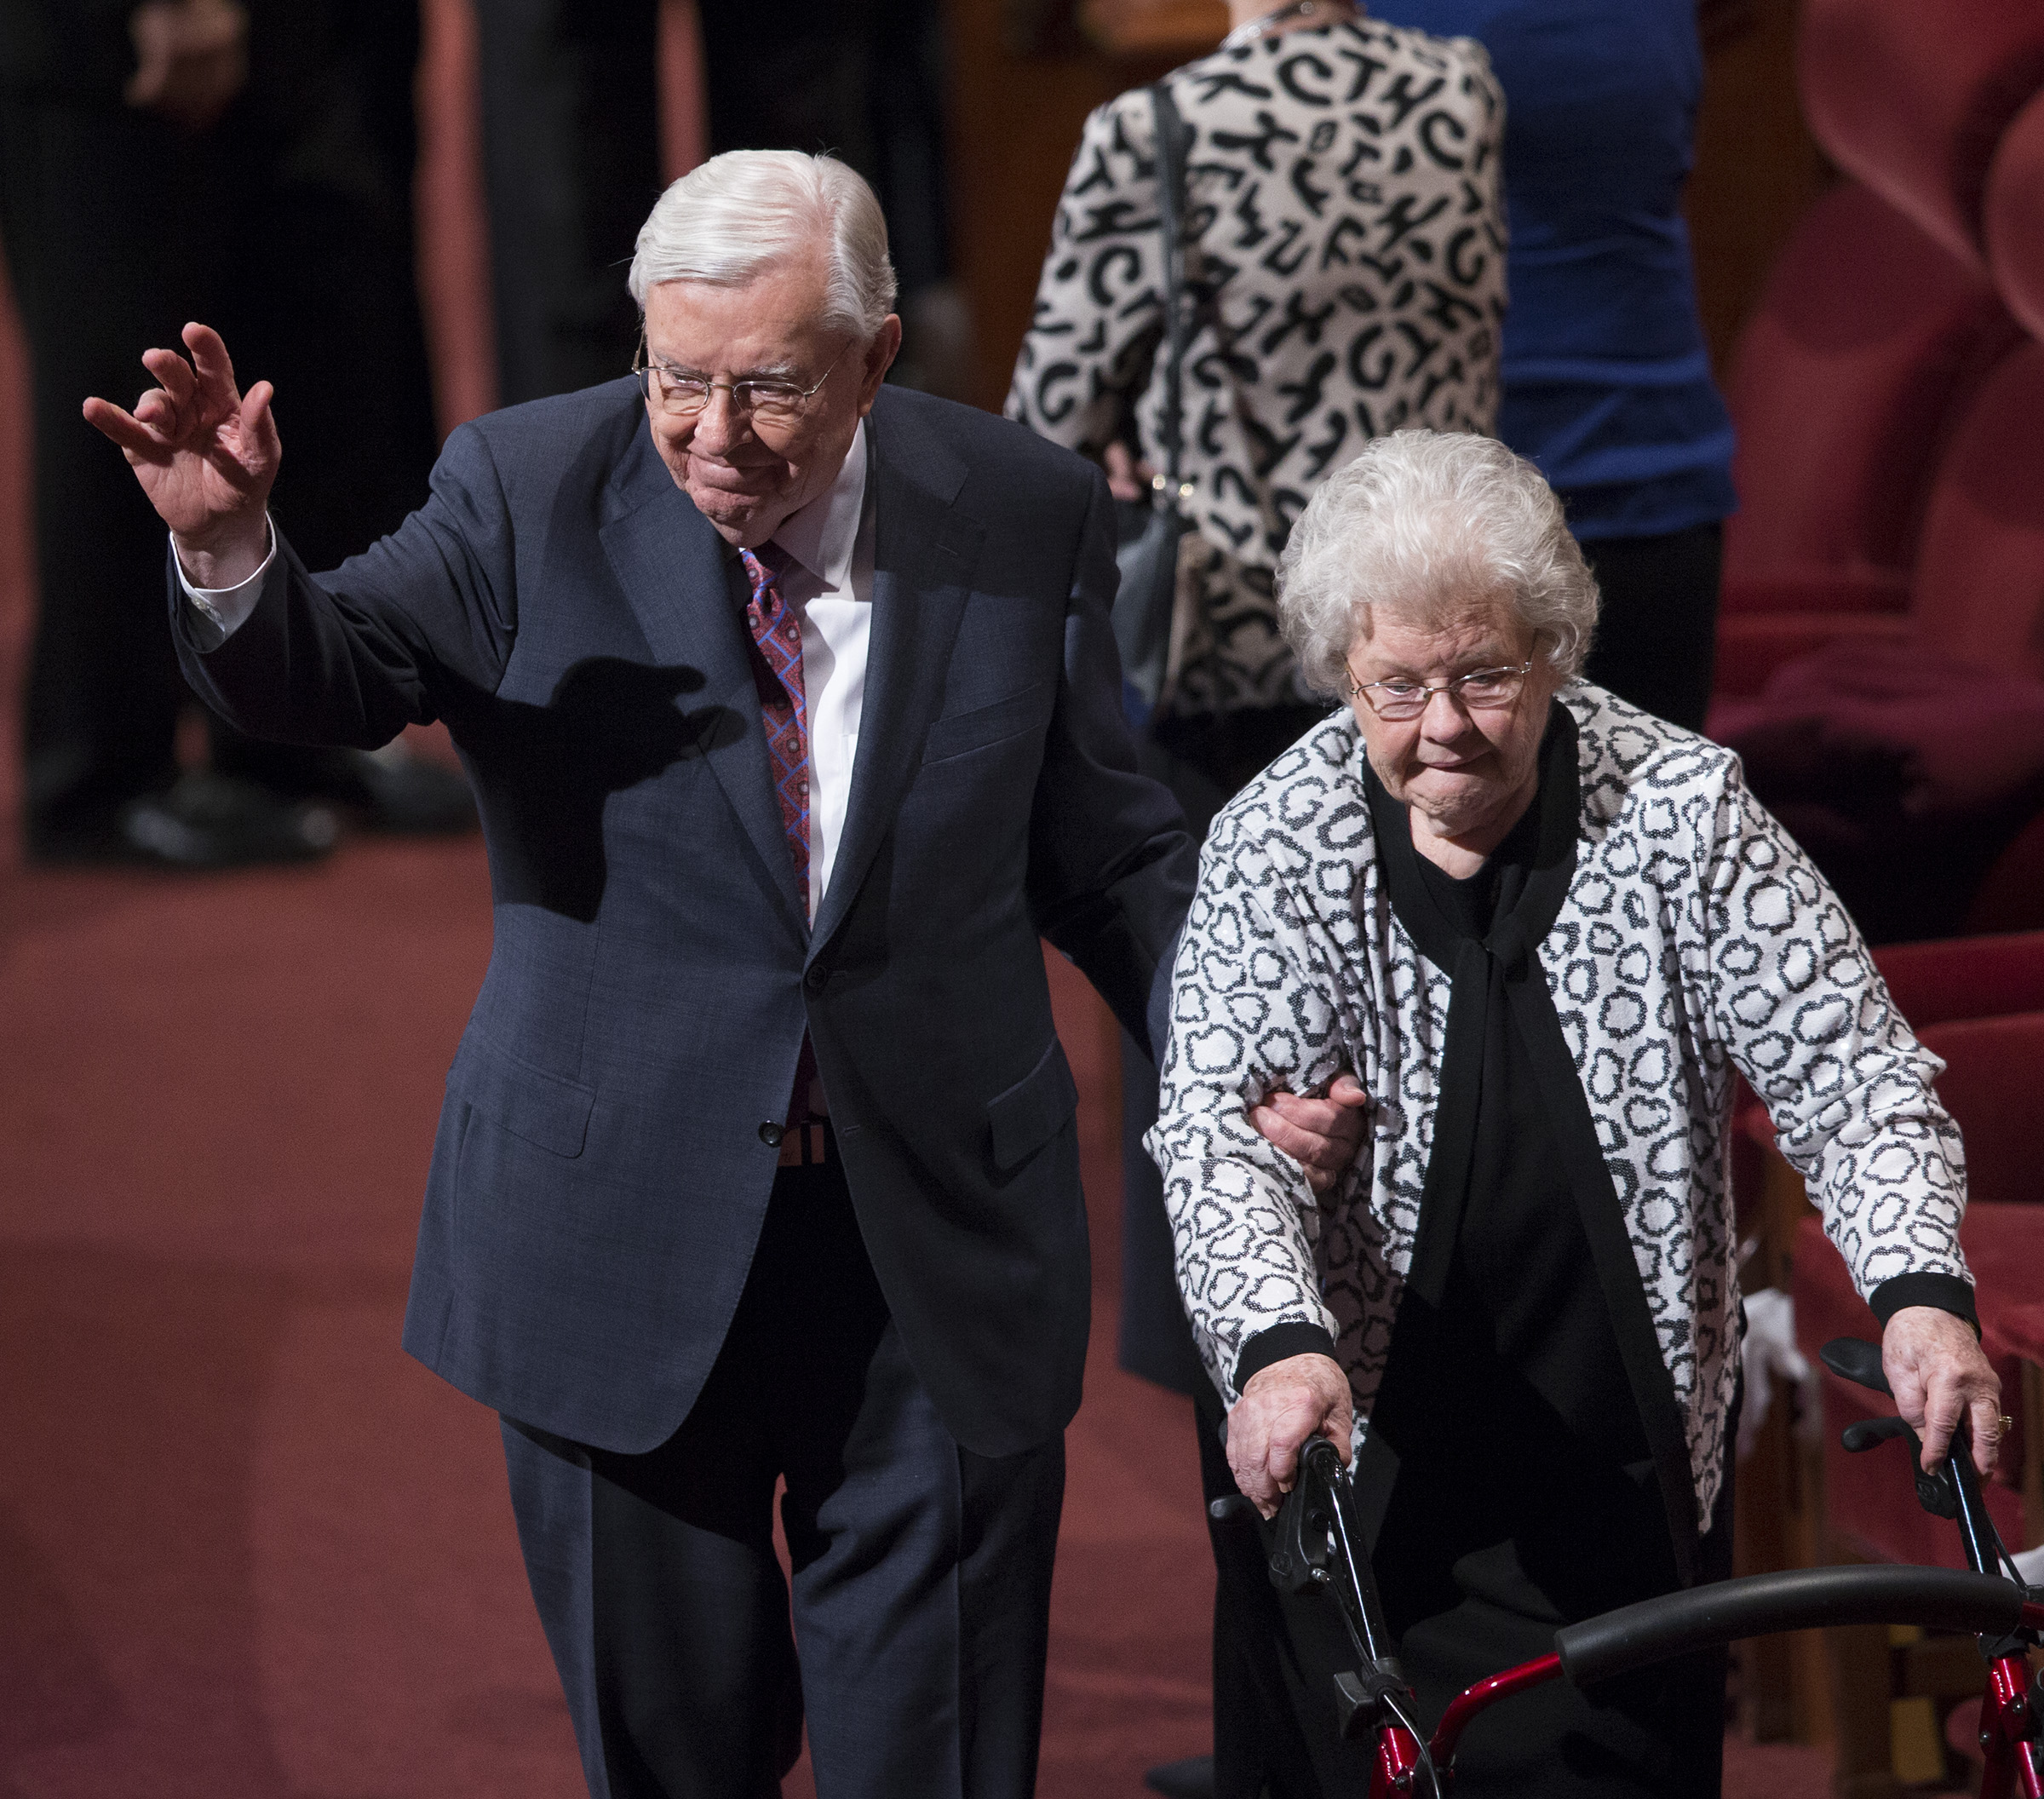 Elder M. Russell Ballard and his wife, Sister Barbara Ballard, exit at the end of the afternoon session of 187th Semiannual General Conference in the Conference Center in Salt Lake City on Sunday, Oct. 1, 2017. Sister Ballard passed away on Oct. 1, 2018, at age 86.